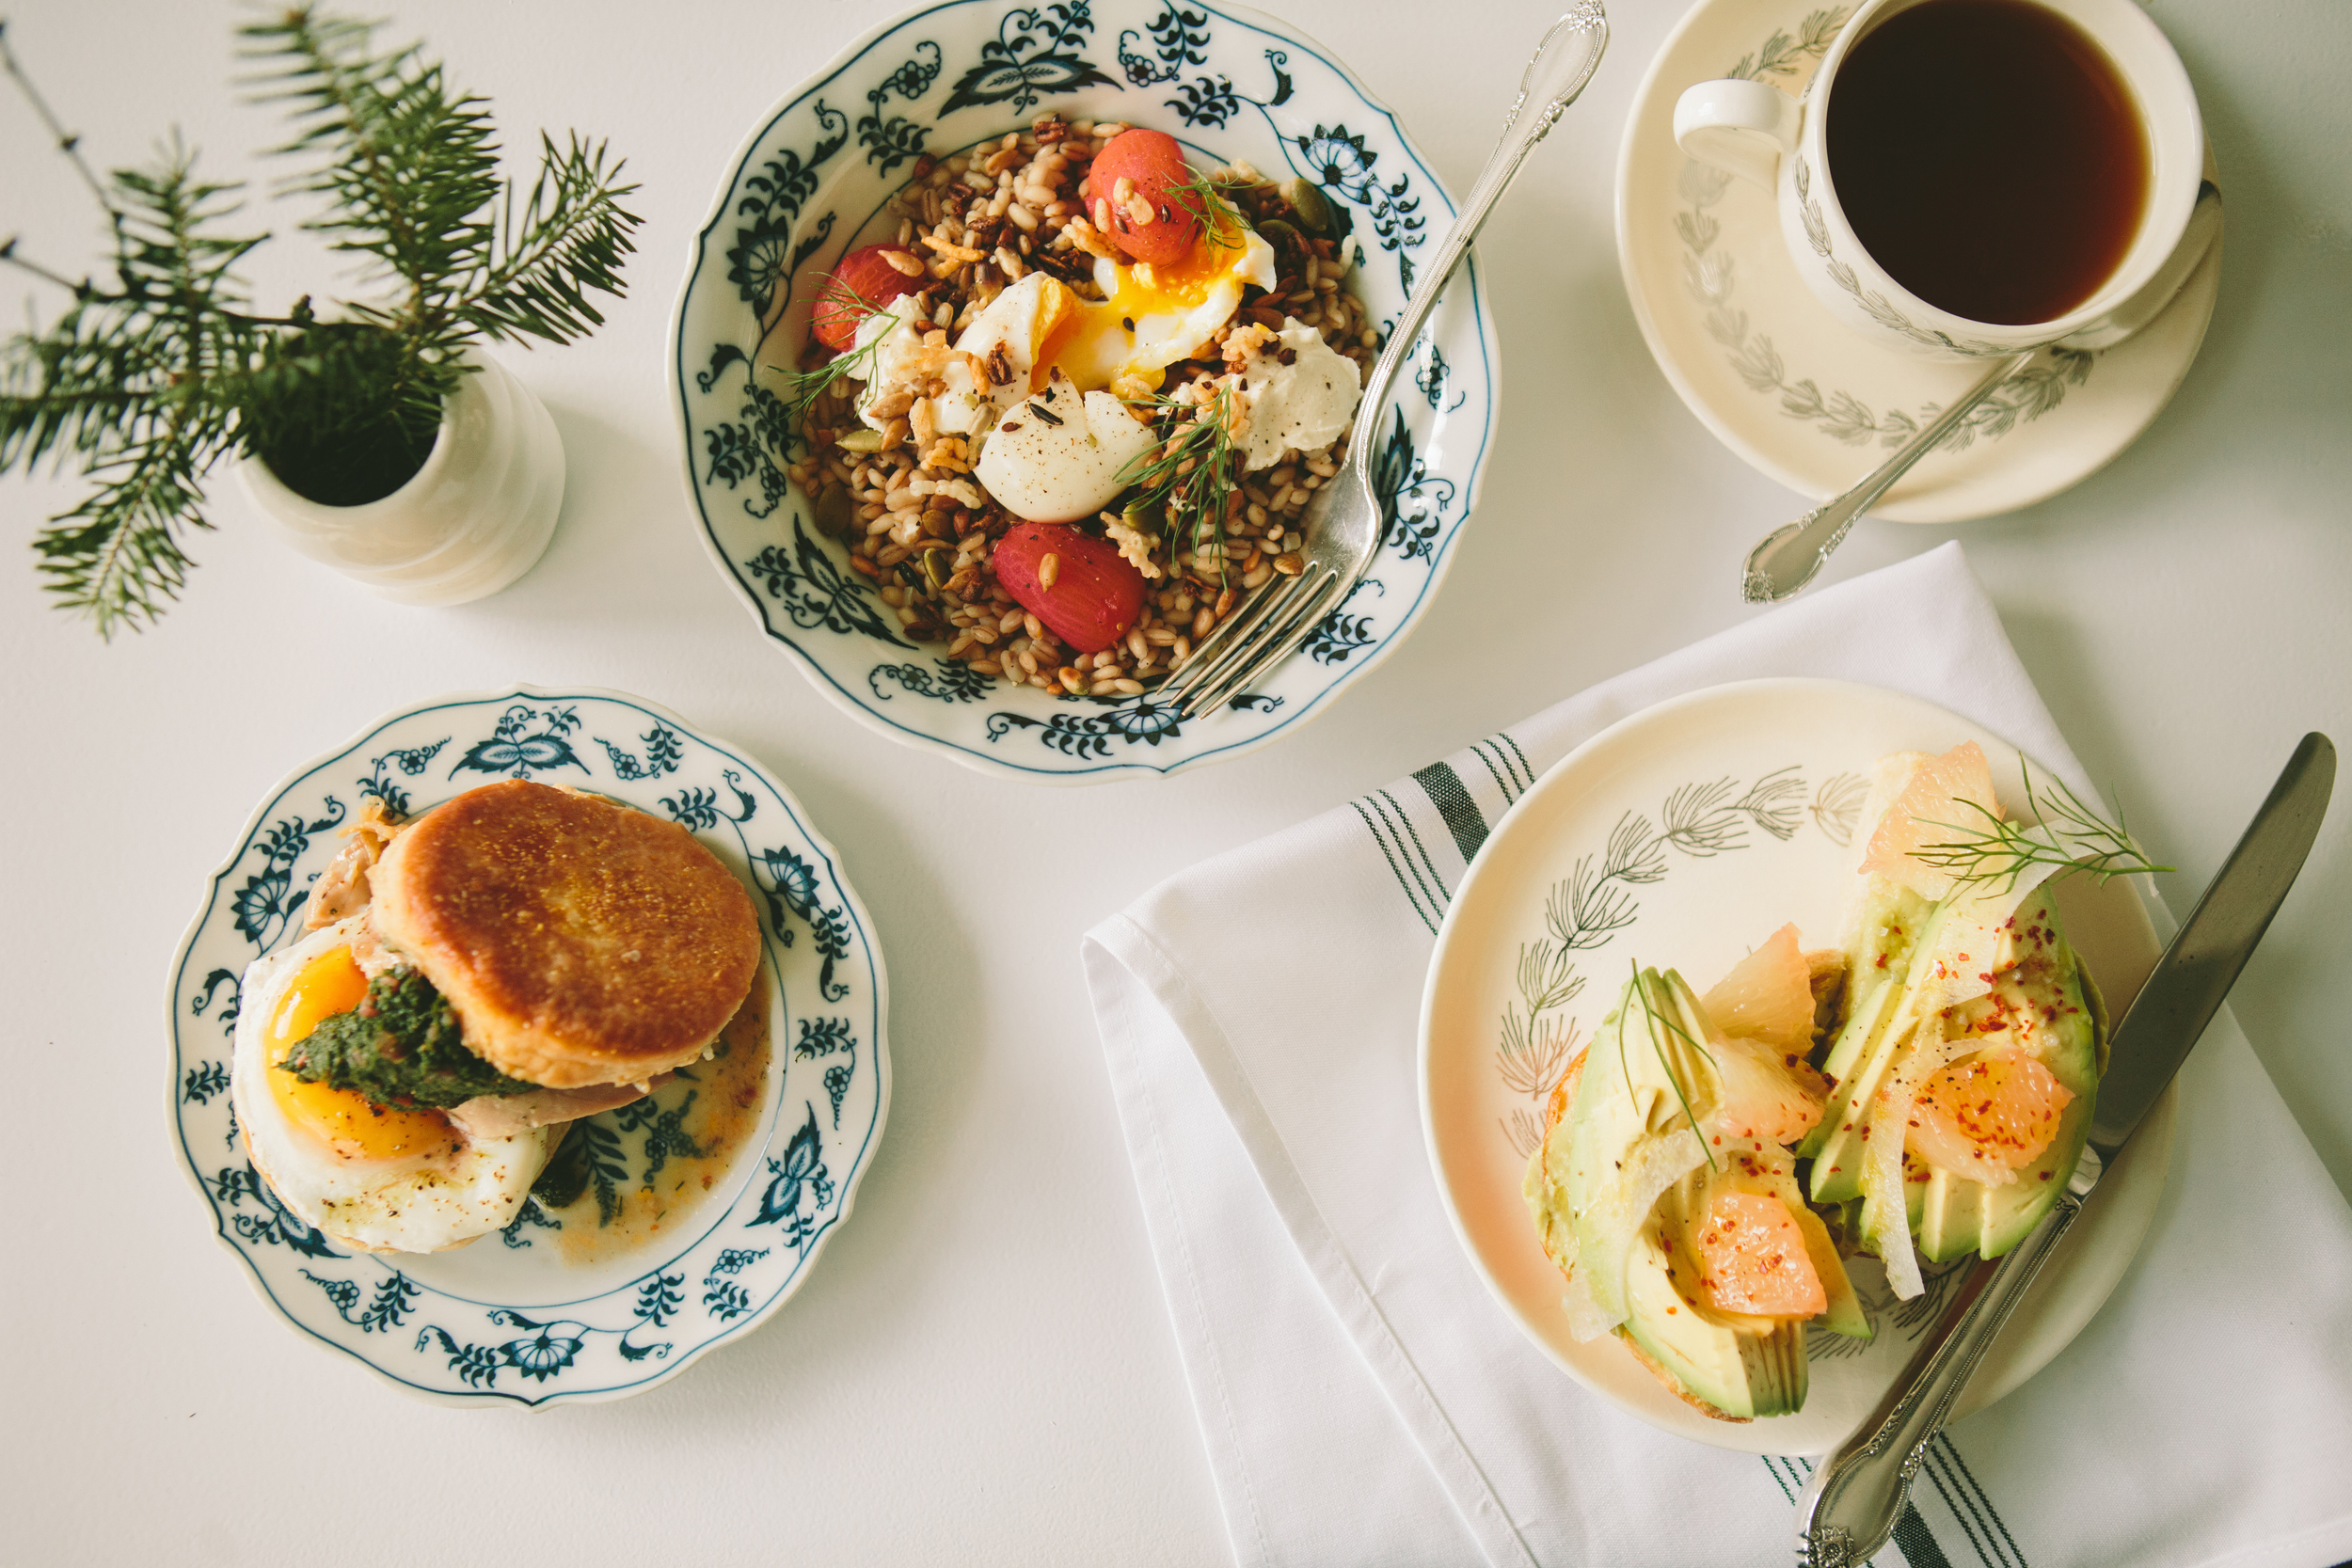 breakfast at juliet. casual options to stay or take away